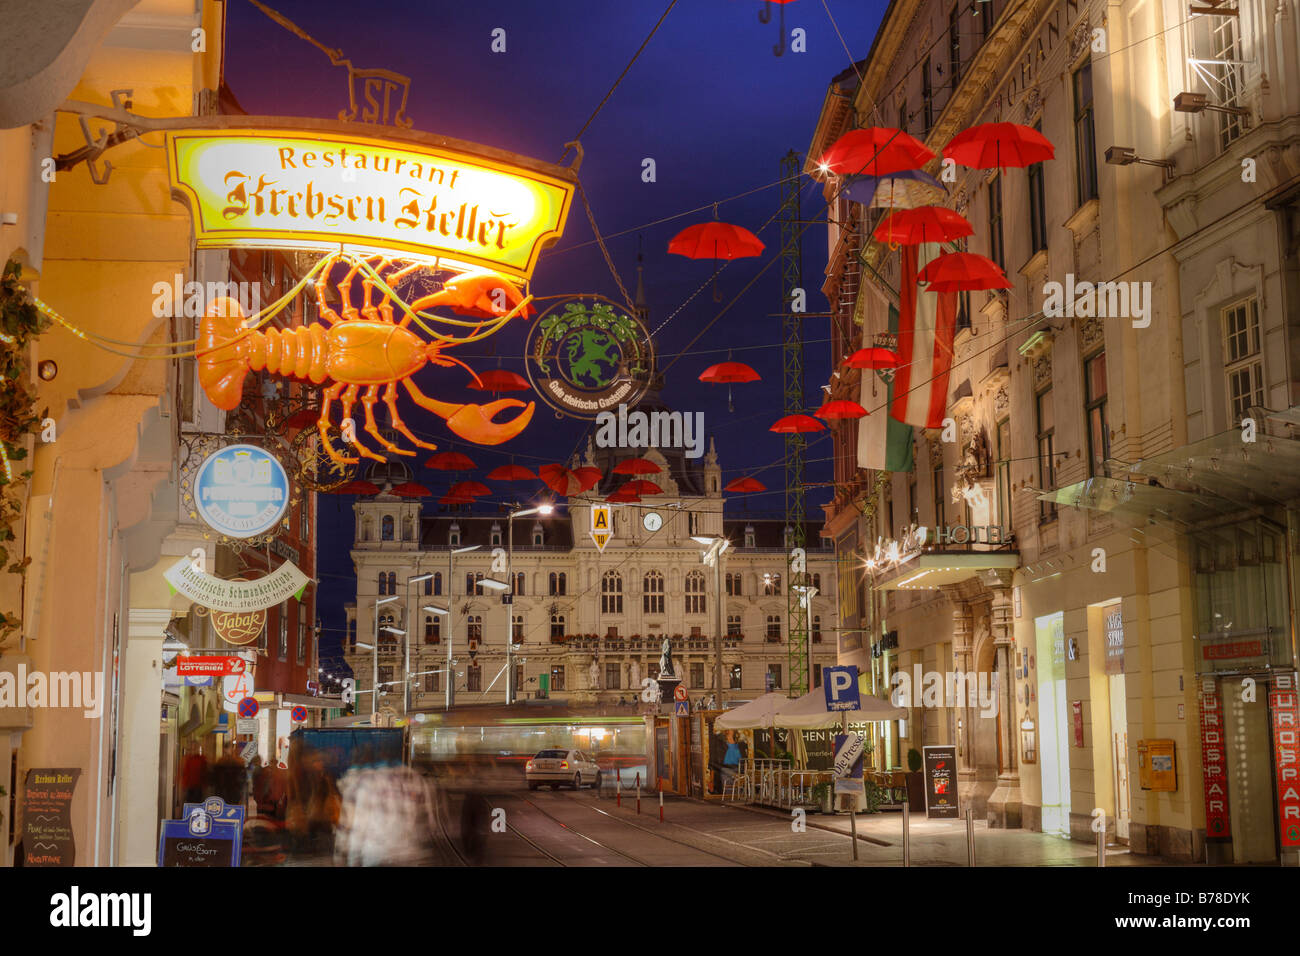 Work of art with red umbrellas in Sackstrasse street, Restaurant Krebesenkeller, Crab's Celler, in front of - Stock Image